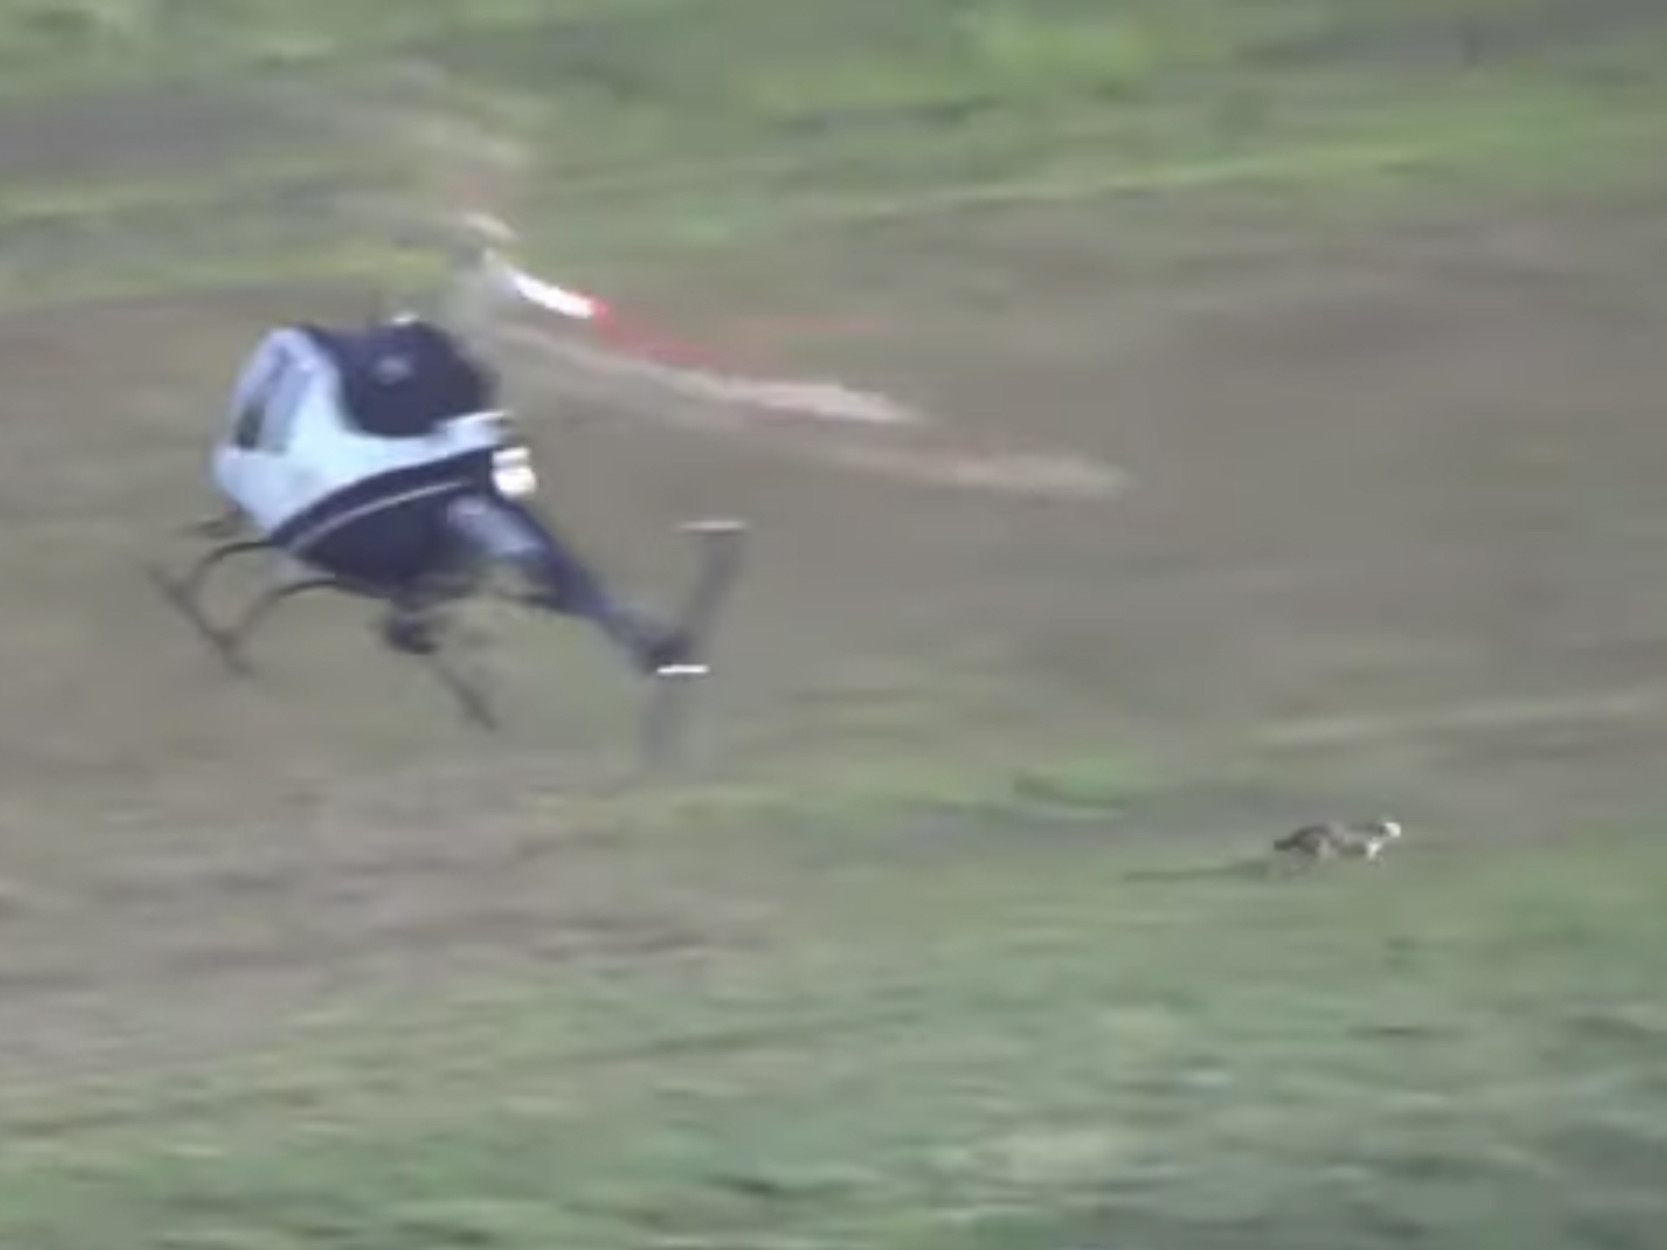 SEE IT: Coyote leads police helicopter on wild chase after running around California airfield